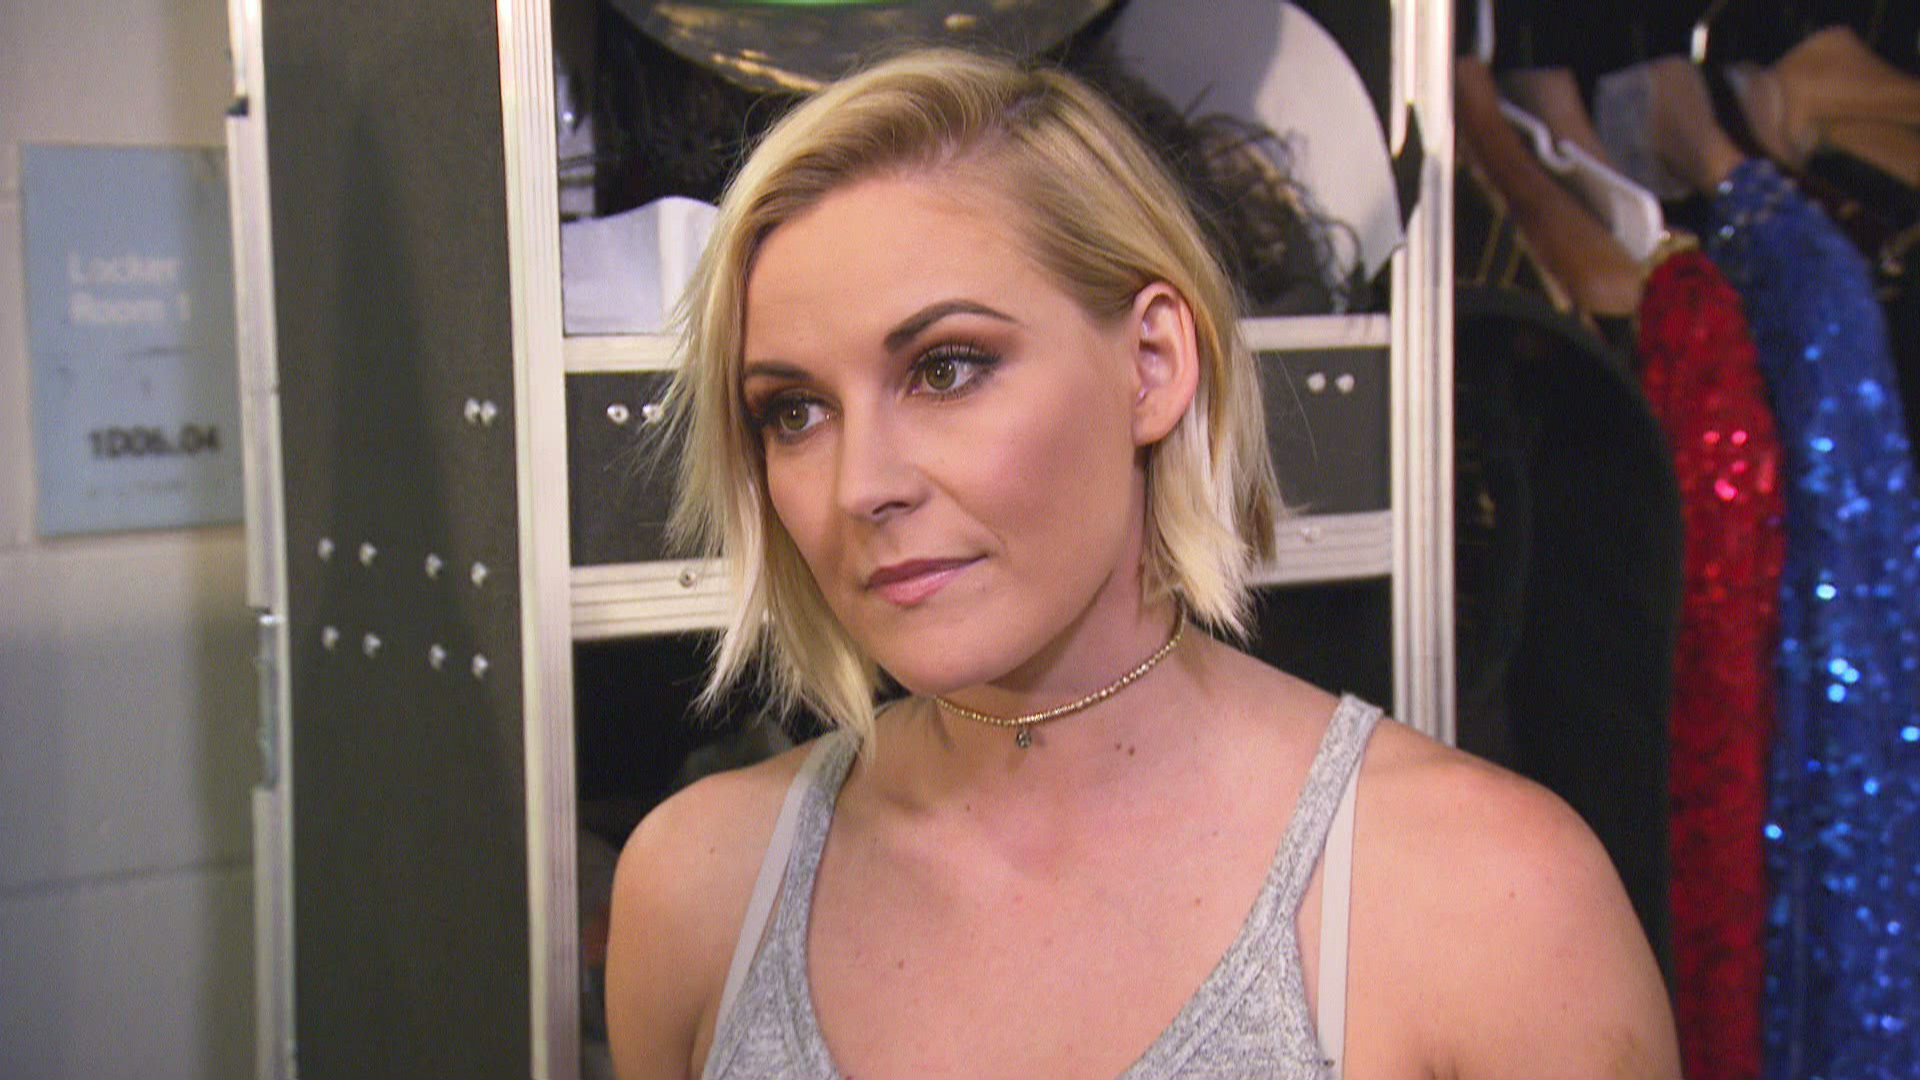 Renee Young and Naomi are not amused at the idea that the Draft could split them up from Dean Ambrose and Jimmy Uso, and they openly contemplate finding other jobs if that should happen.